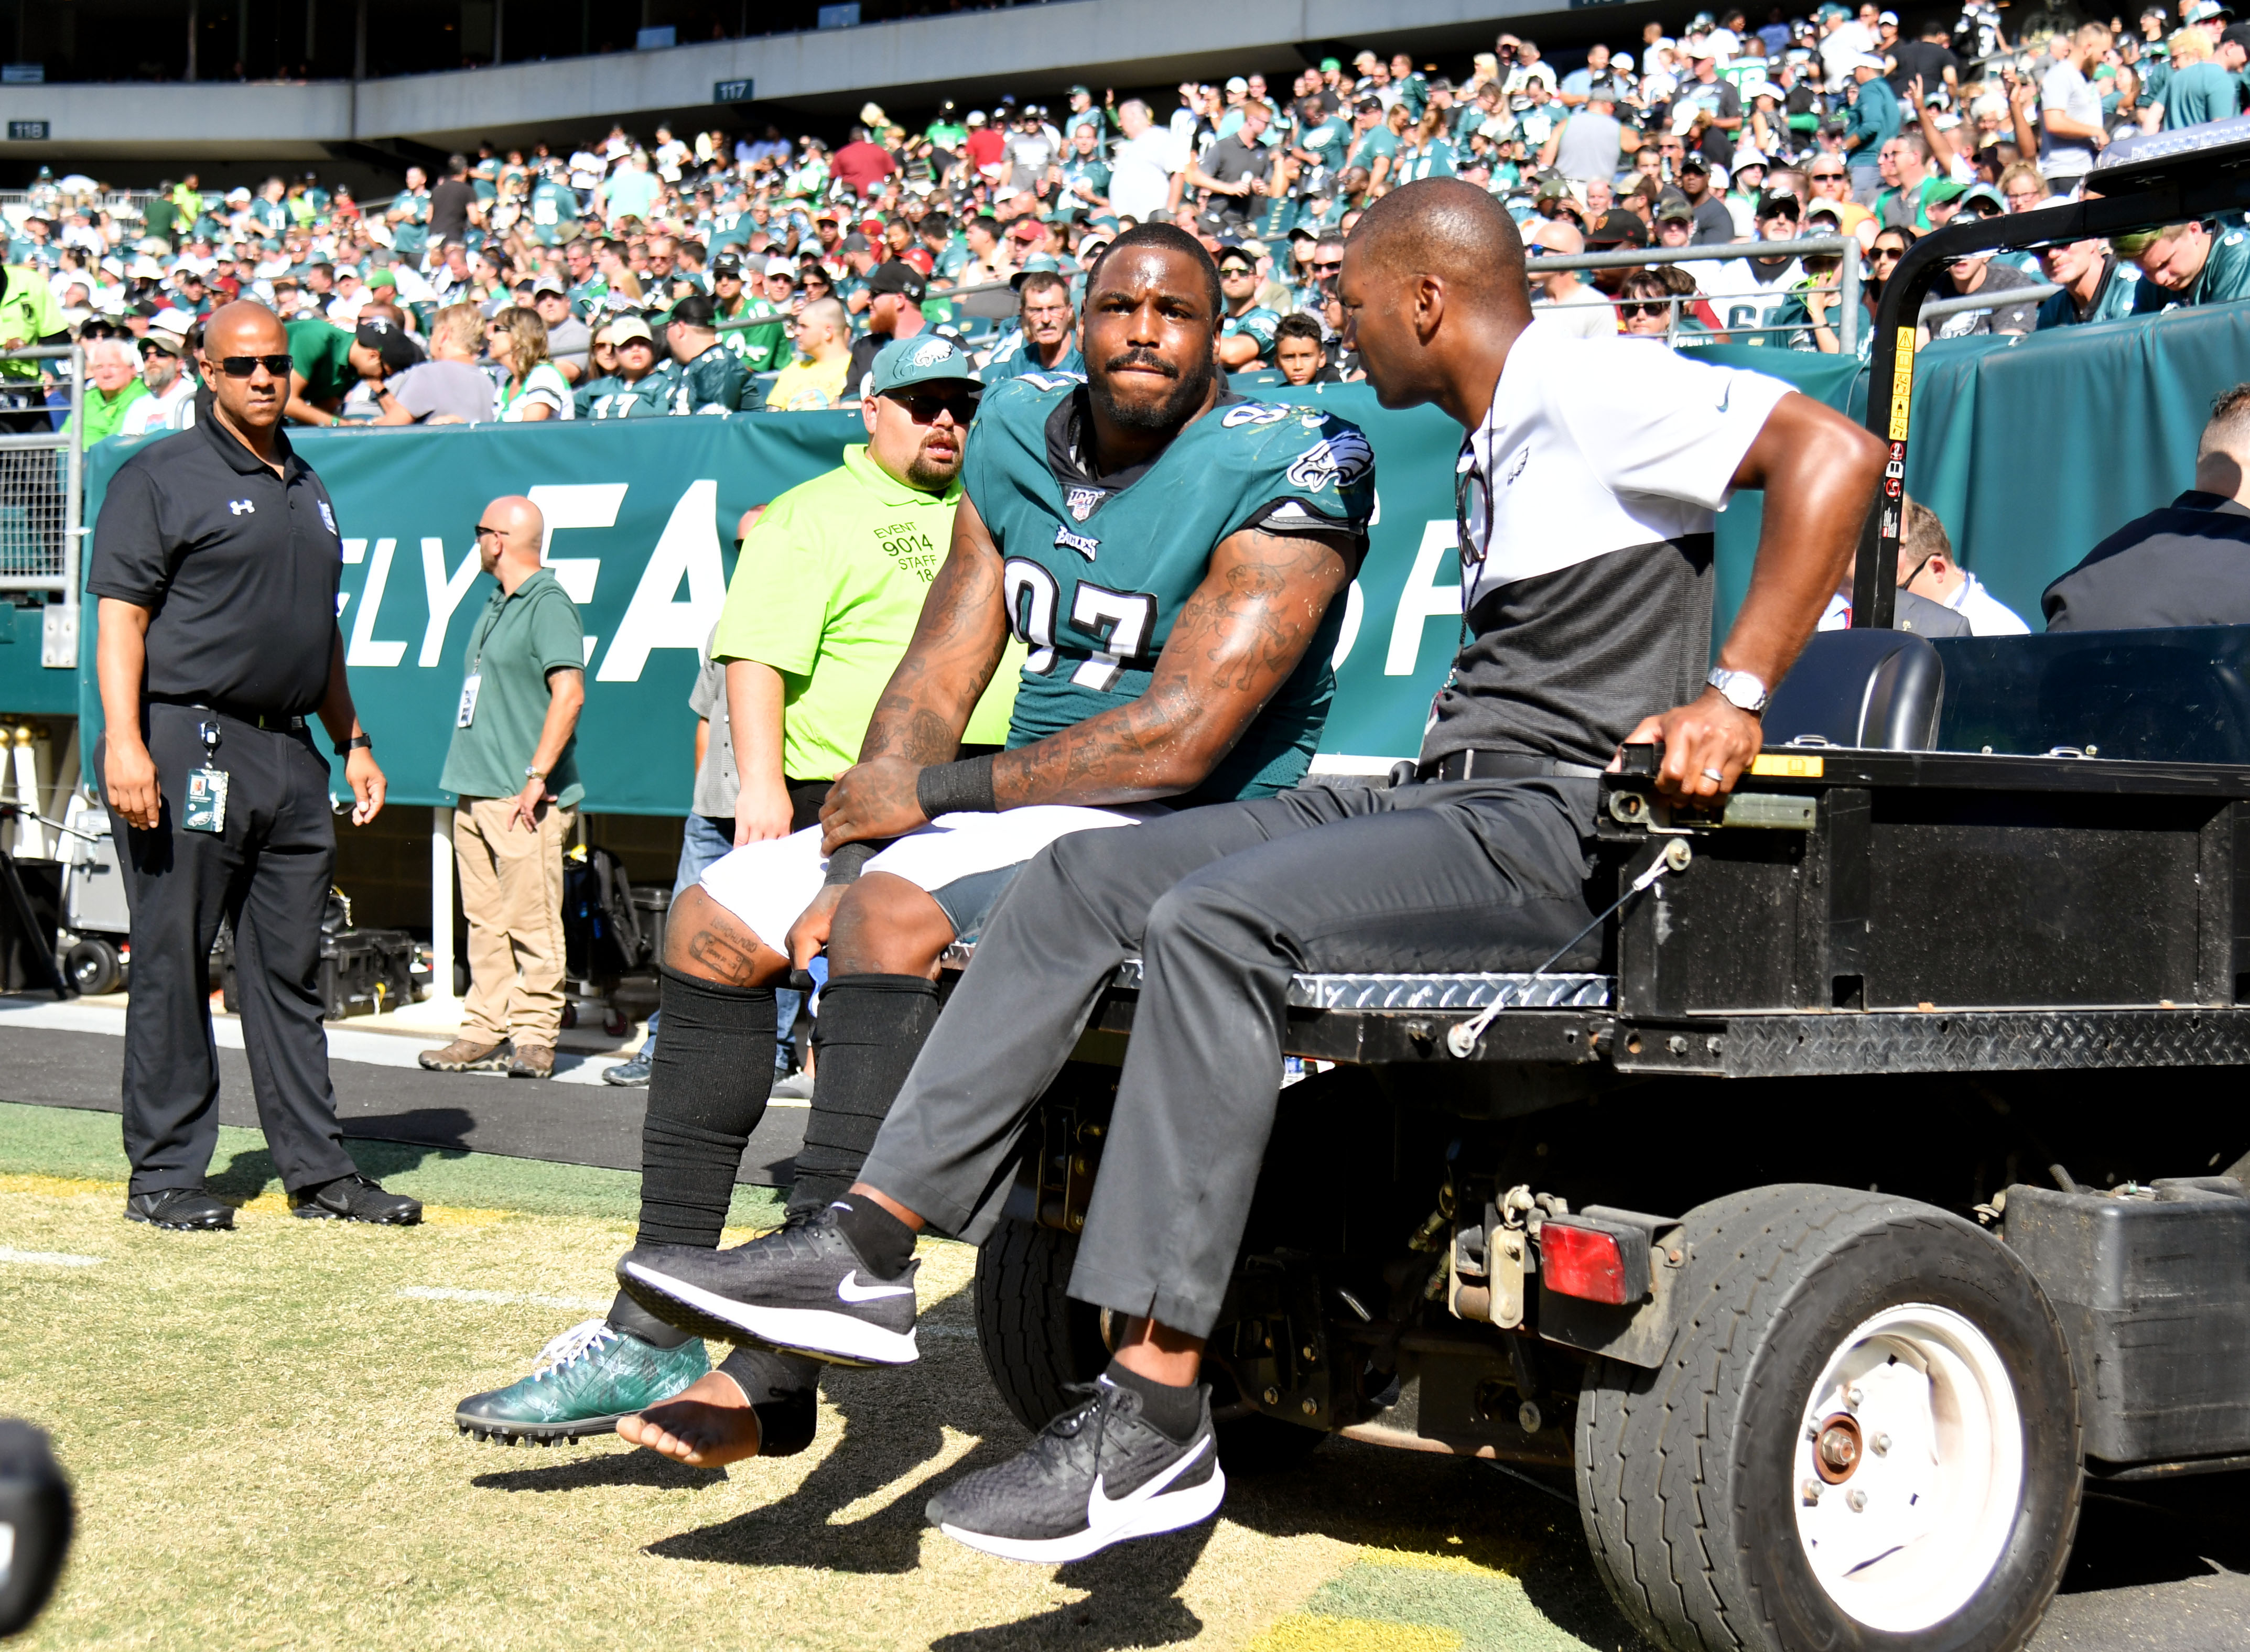 On facing medical challenges for fans and Eagles alike